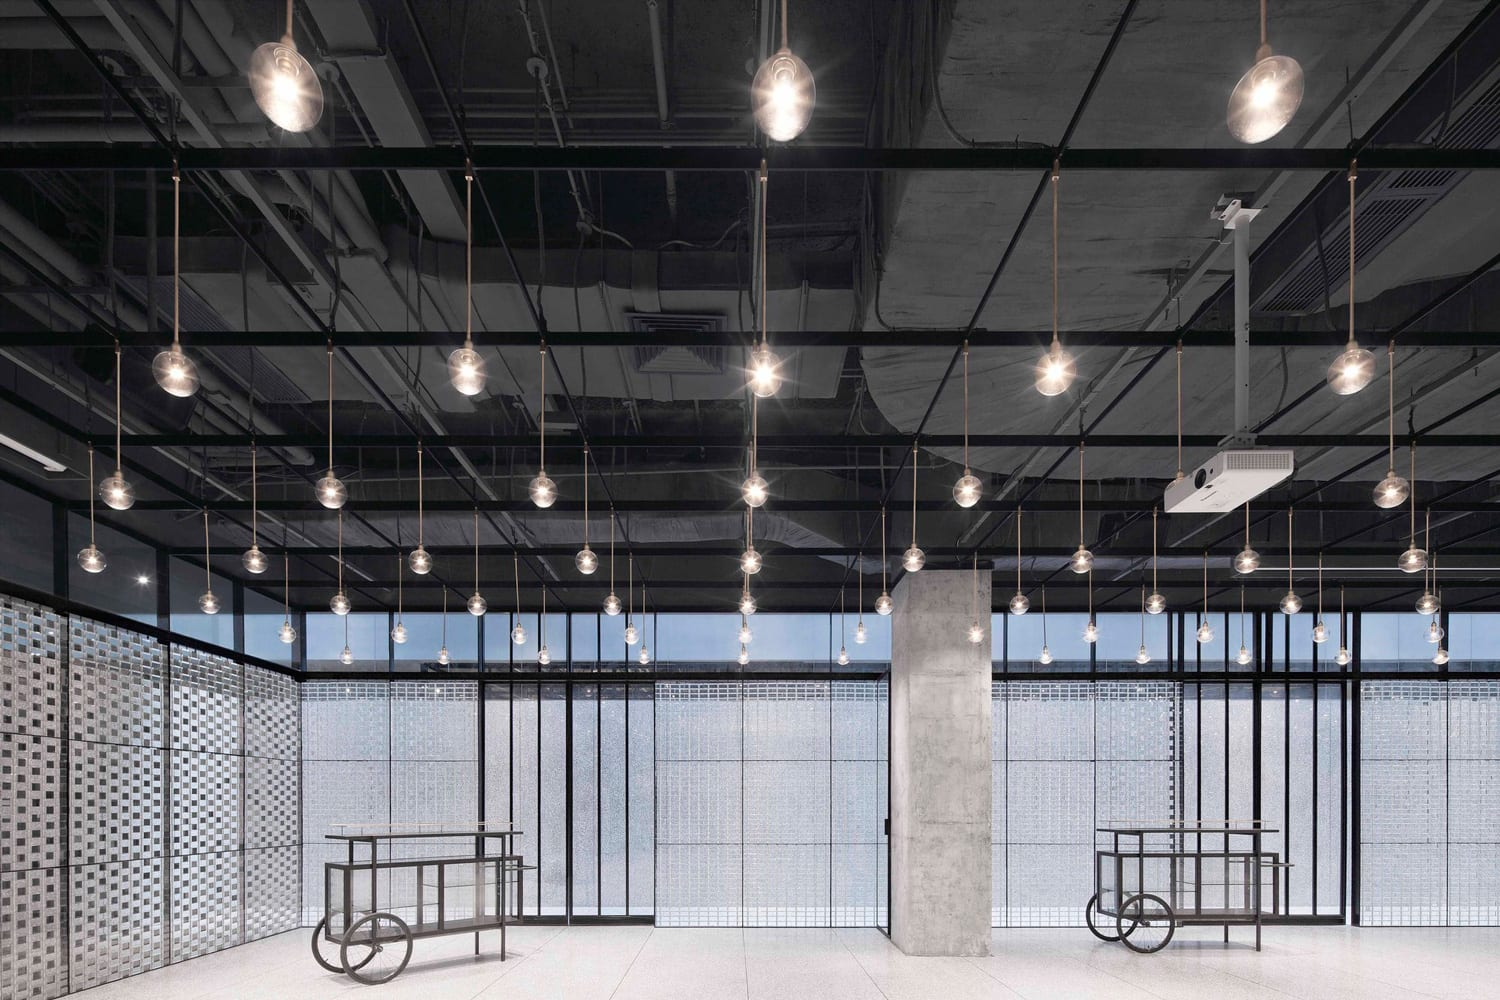 BEI Function Space by Neri&Hu Design & Research Office | Yellowtrace